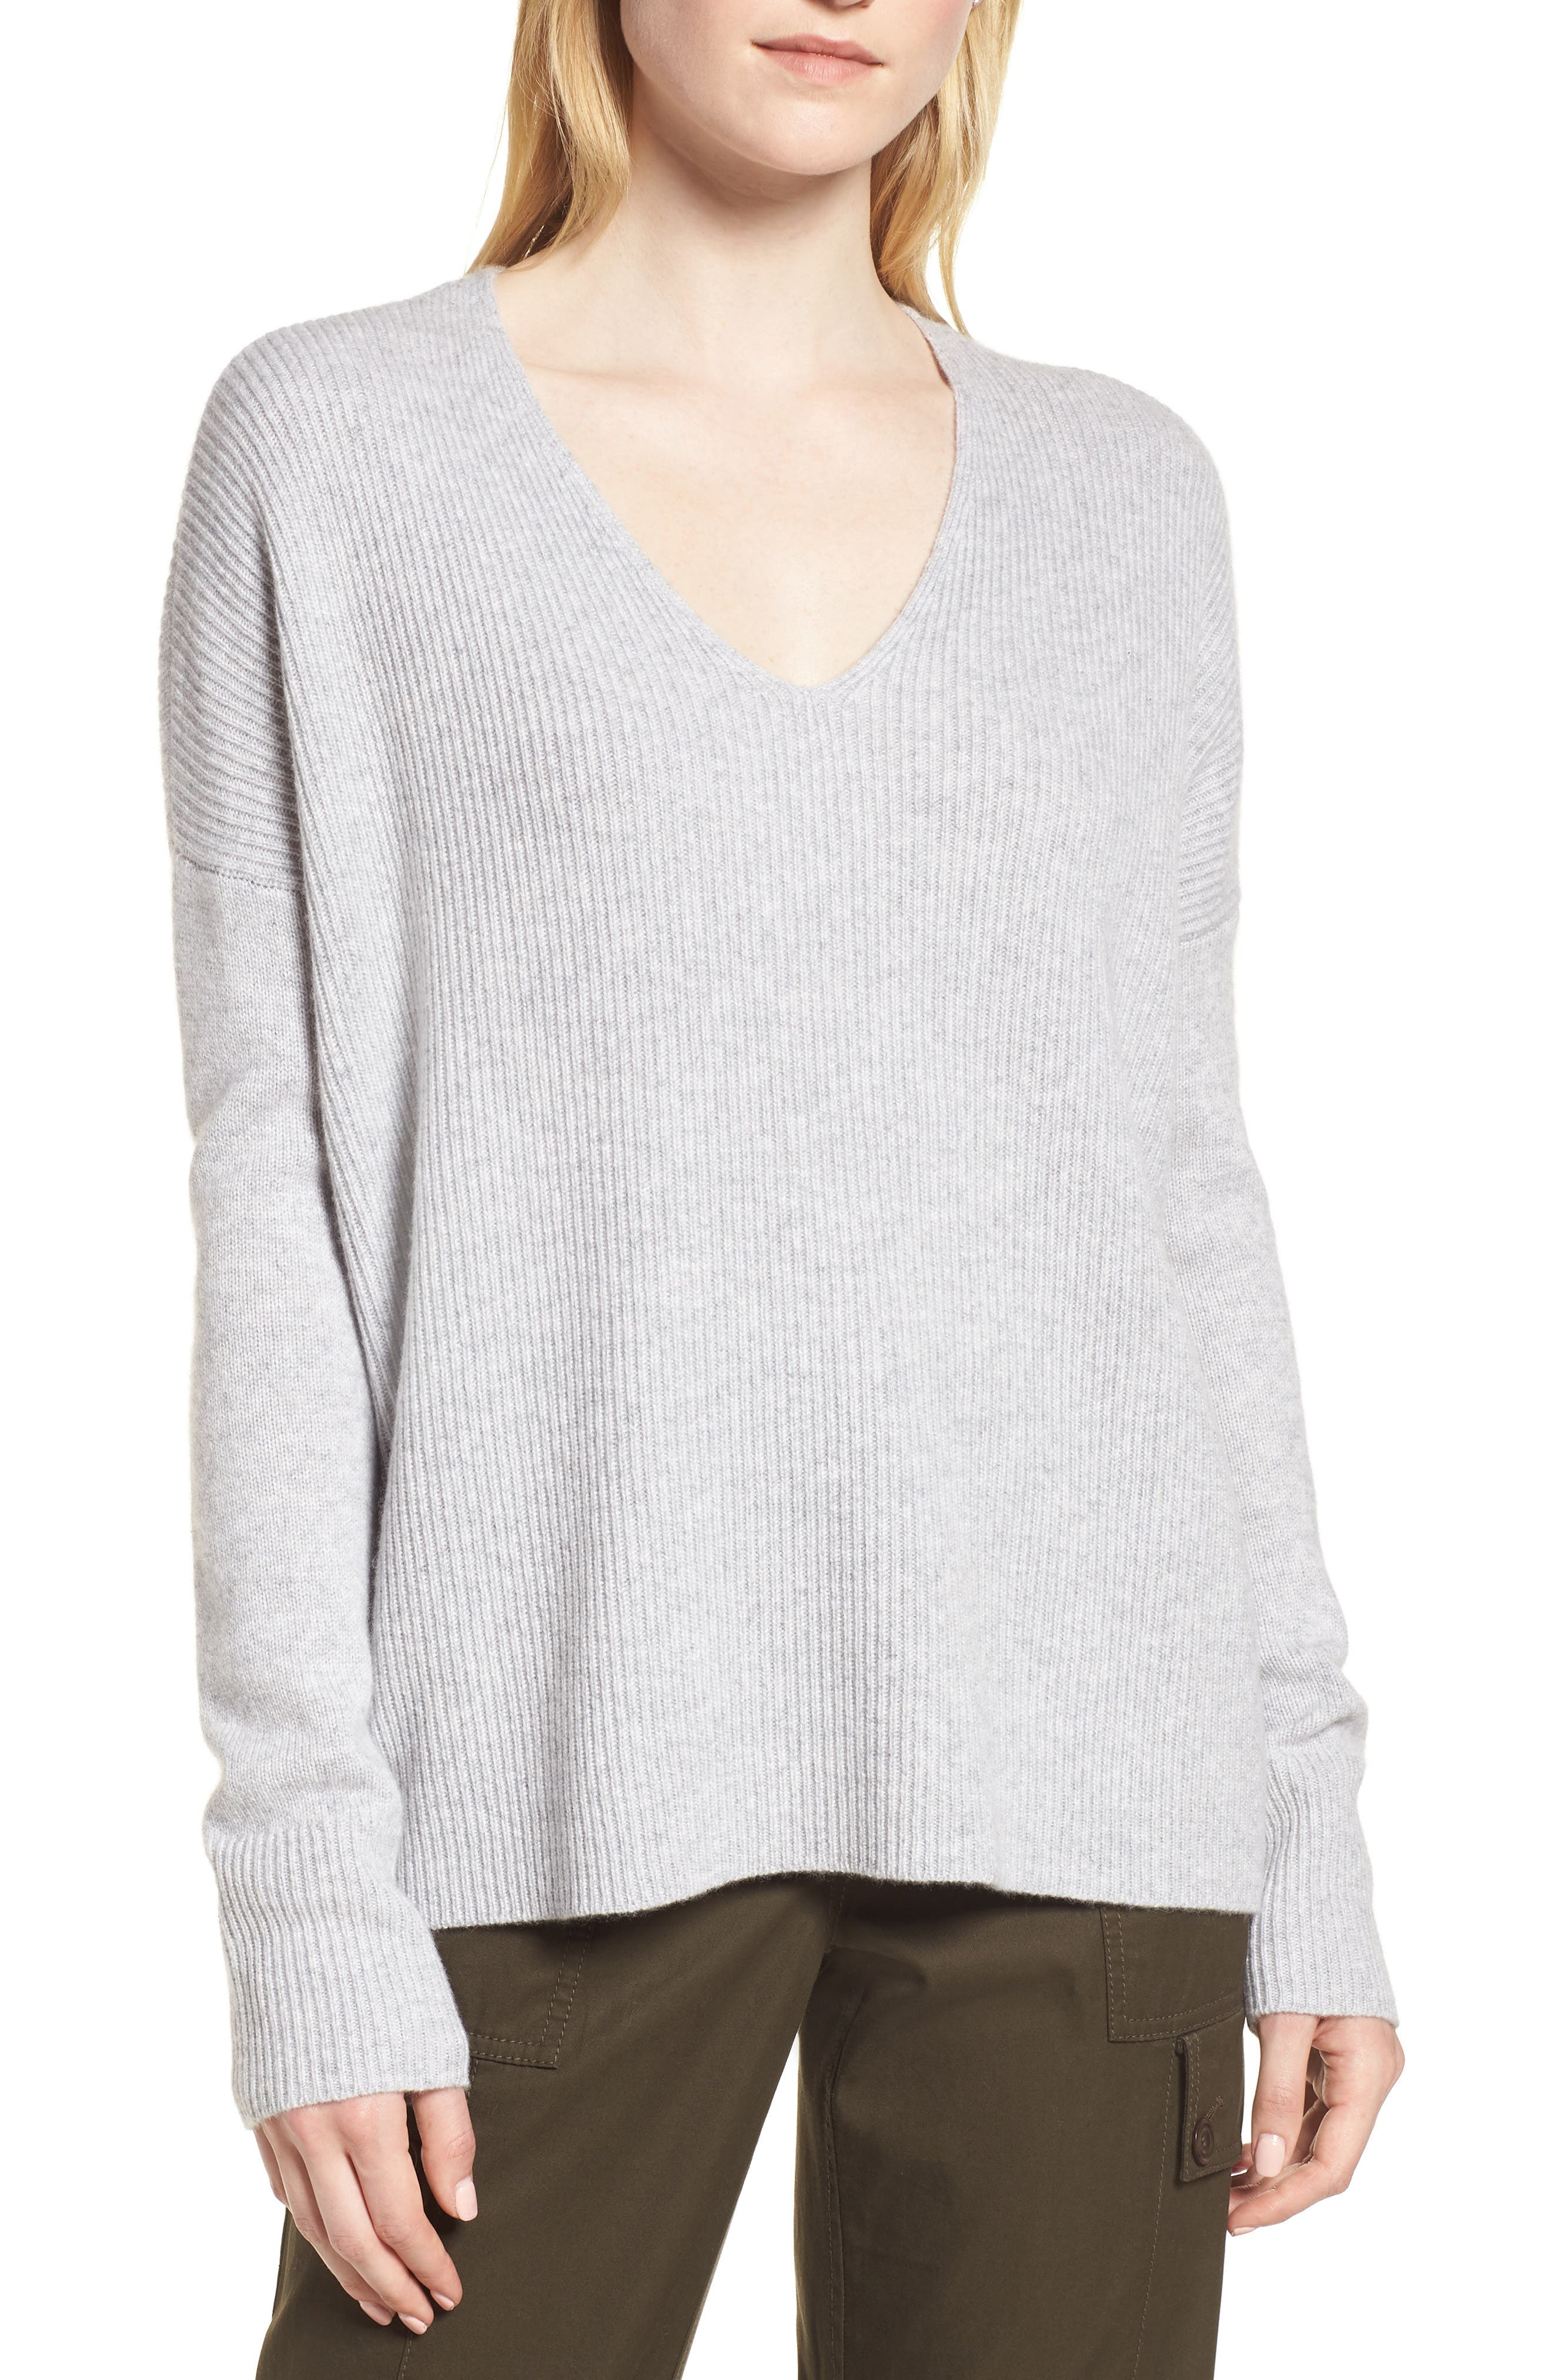 Cashmere Soft Ribbed Pullover Sweater,                             Main thumbnail 1, color,                             Grey Clay Heather